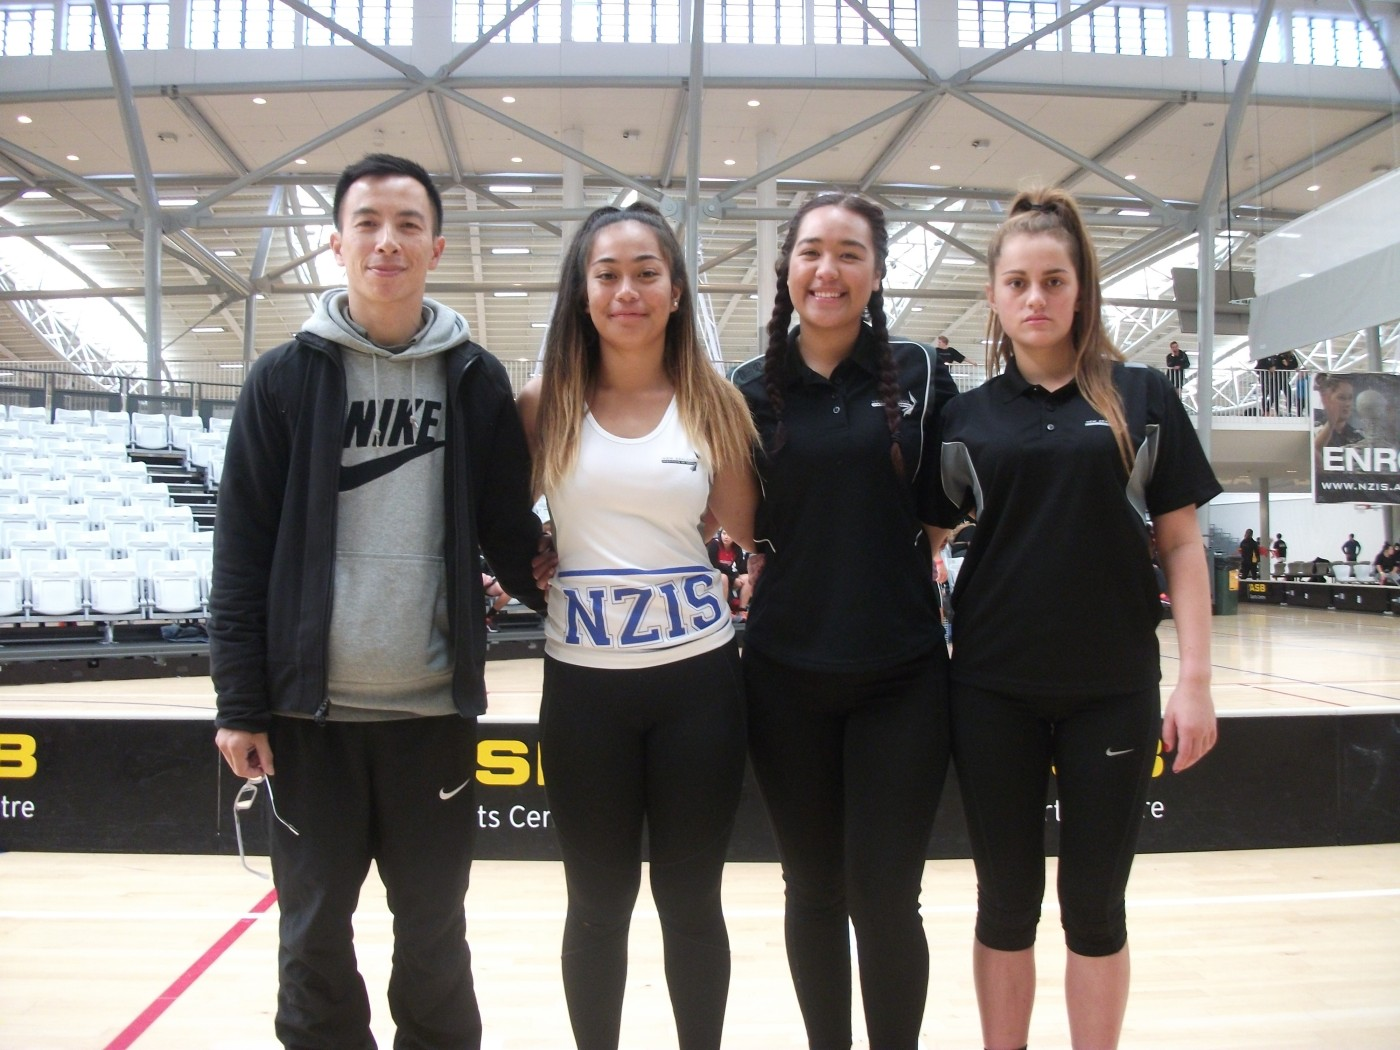 Robert Chung (Umpire) and Women Singles players Sieni Mose (Auckland), Alana Rahui (Wellington) and Mahina Mullany (Christchurch).